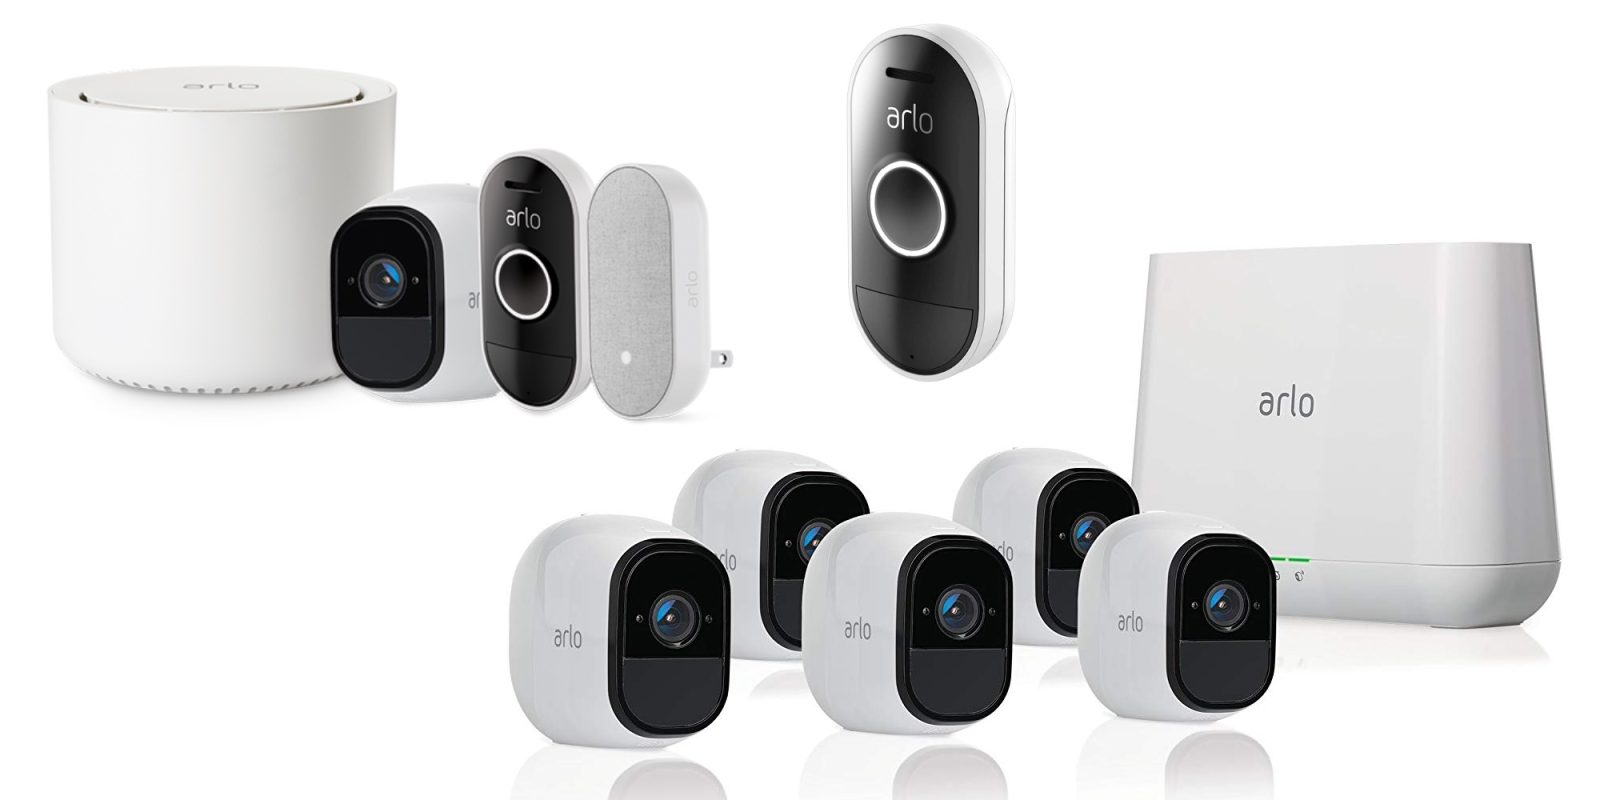 Save up to 30% on Arlo Home Security Systems + accessories from $40 at Amazon